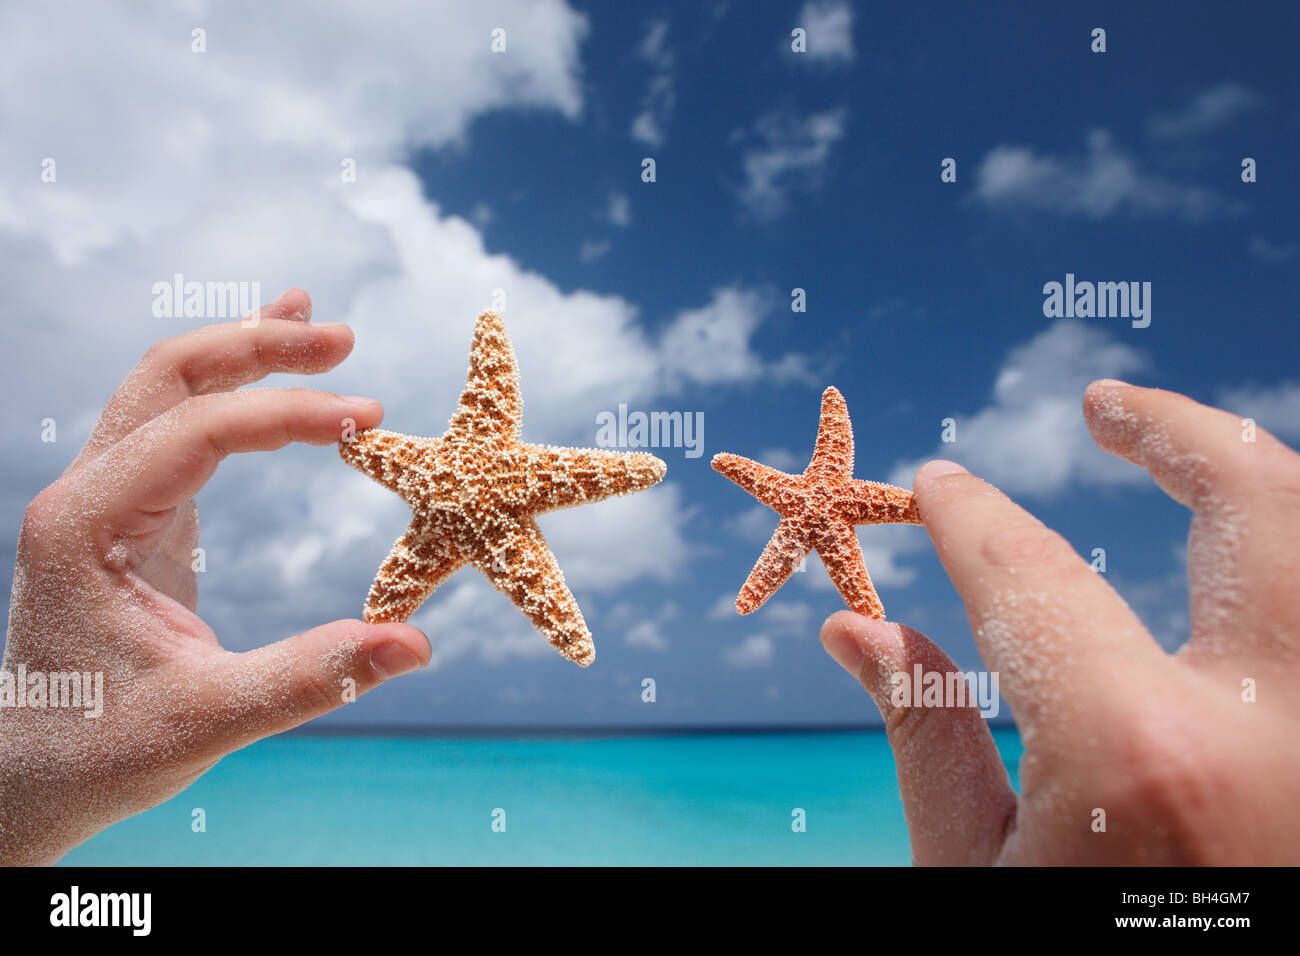 A man's hands holding one large and one small starfish in the air on a tropical beach - Stock Image